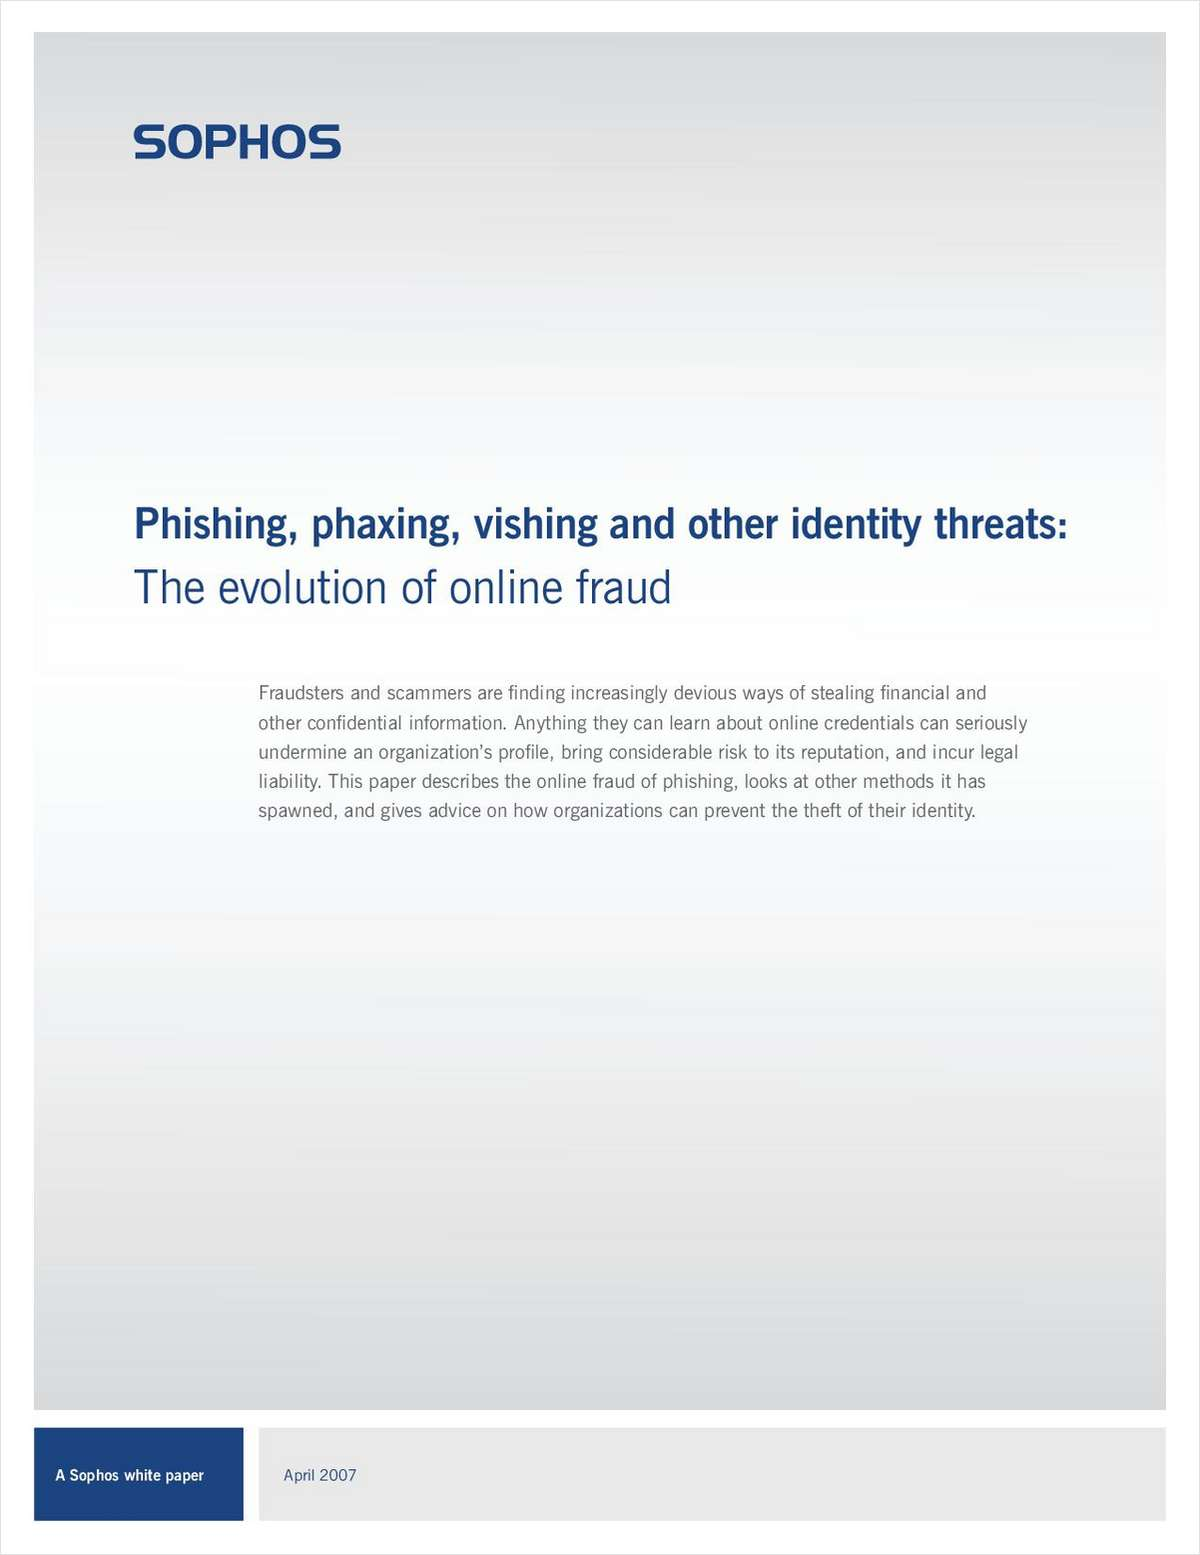 Phishing, Phaxing, Vishing and Other Identity Threats: The Evolution of Online Fraud